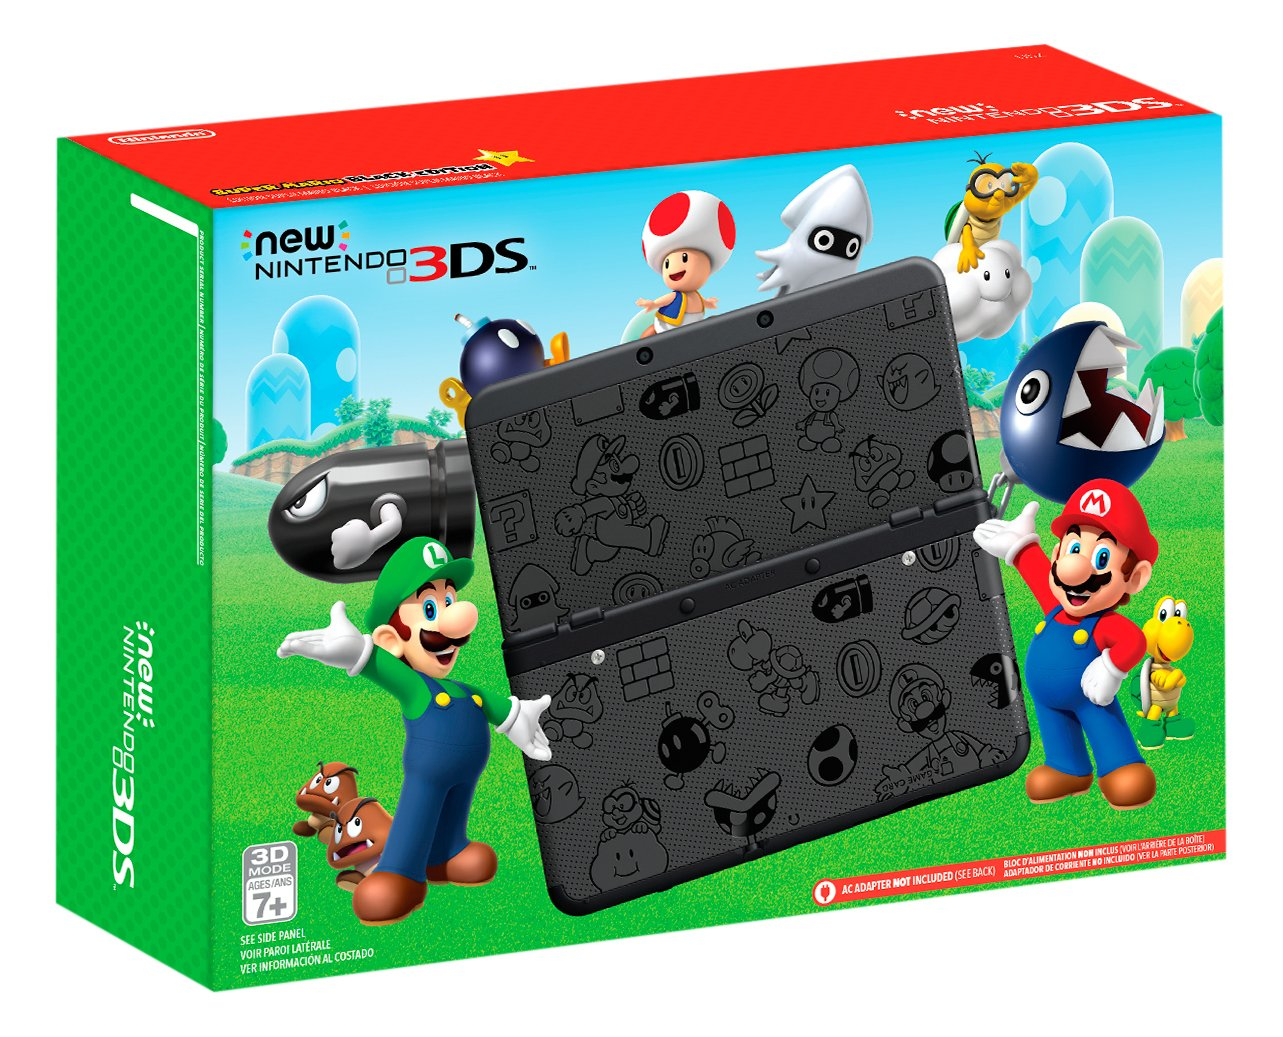 Nintendo New Nintendo 3DS Super Mario Black Edition - Nintendo 3DS by Nintendo